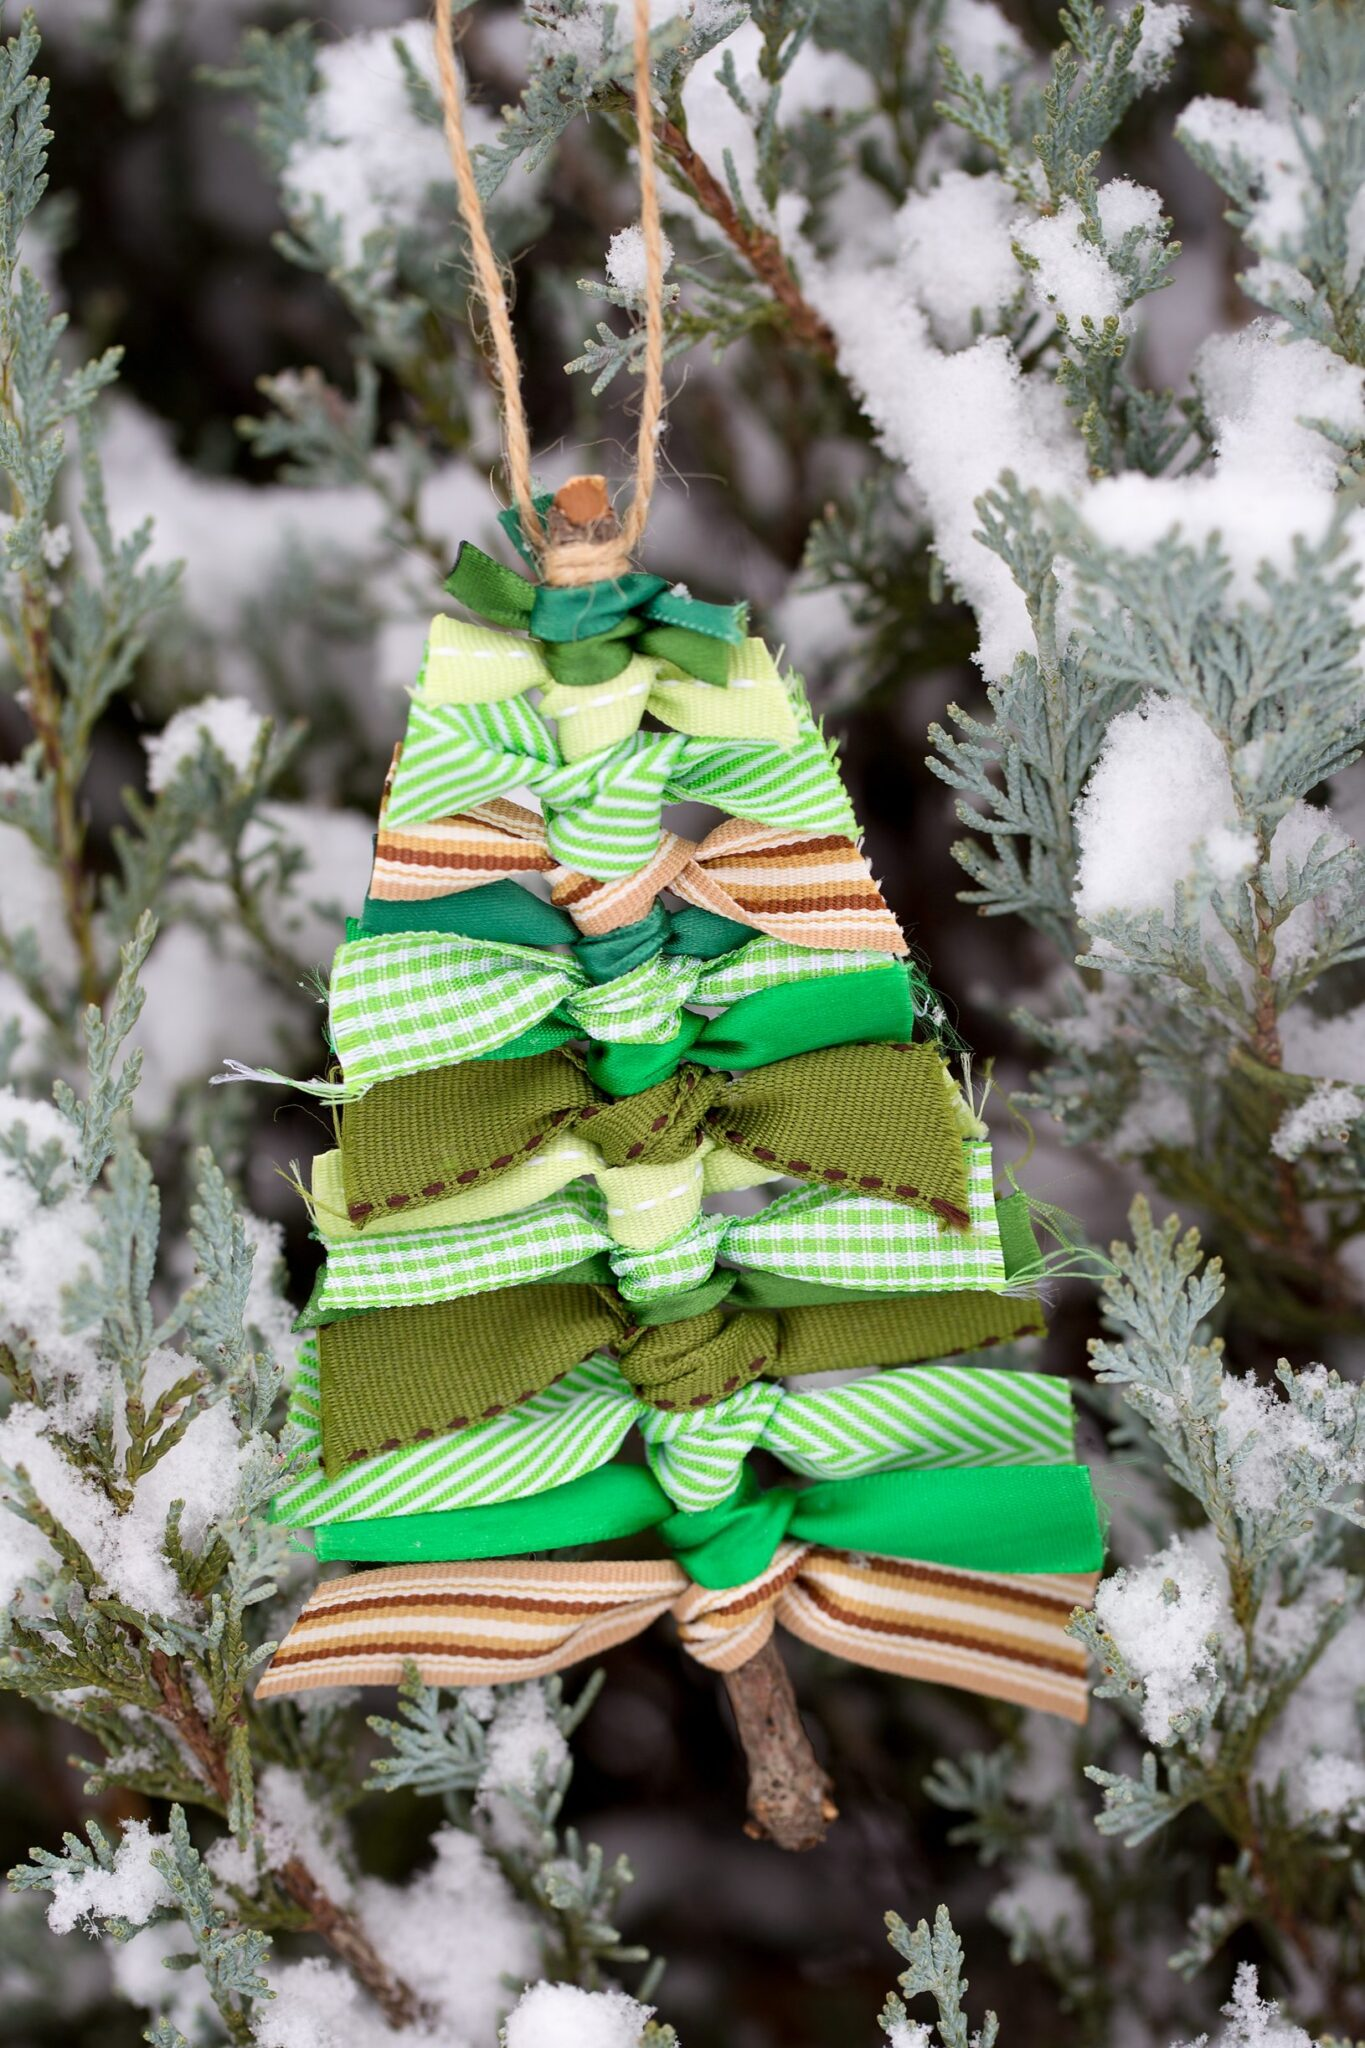 Scrap Ribbon Christmas Tree Ornament | Stunning Homemade Christmas Ornaments You Can DIY On A Budget